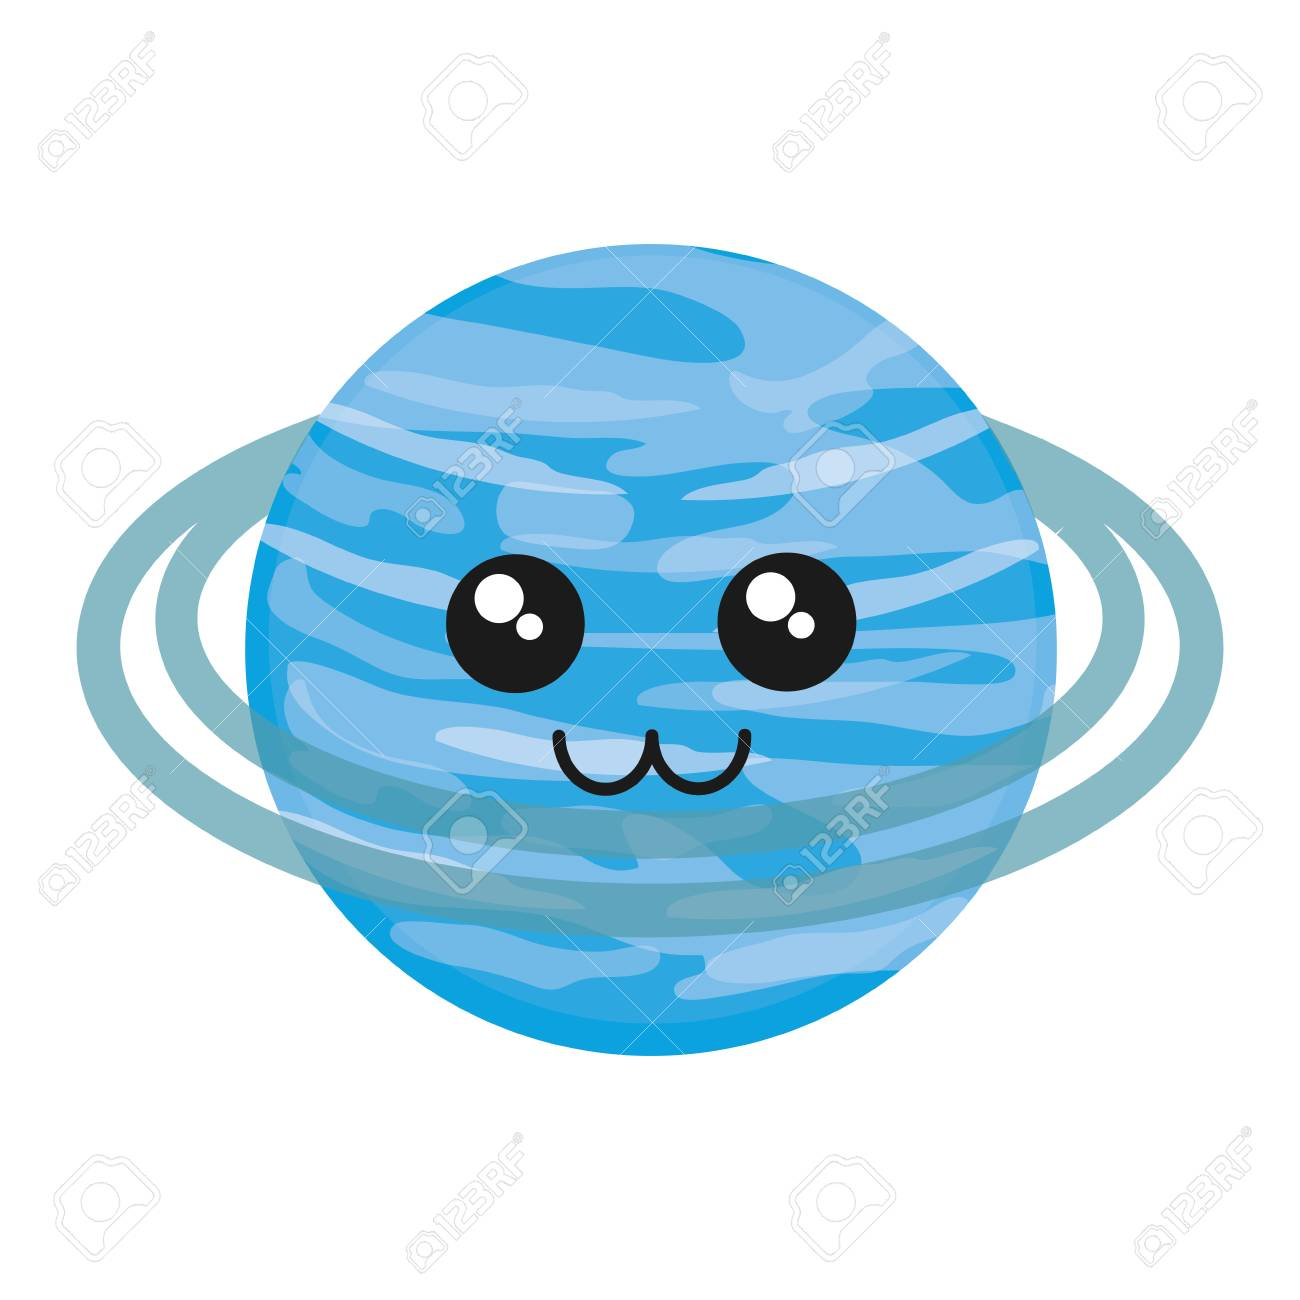 hight resolution of kawaii uranus icon over white background vector illustration stock vector 88540750